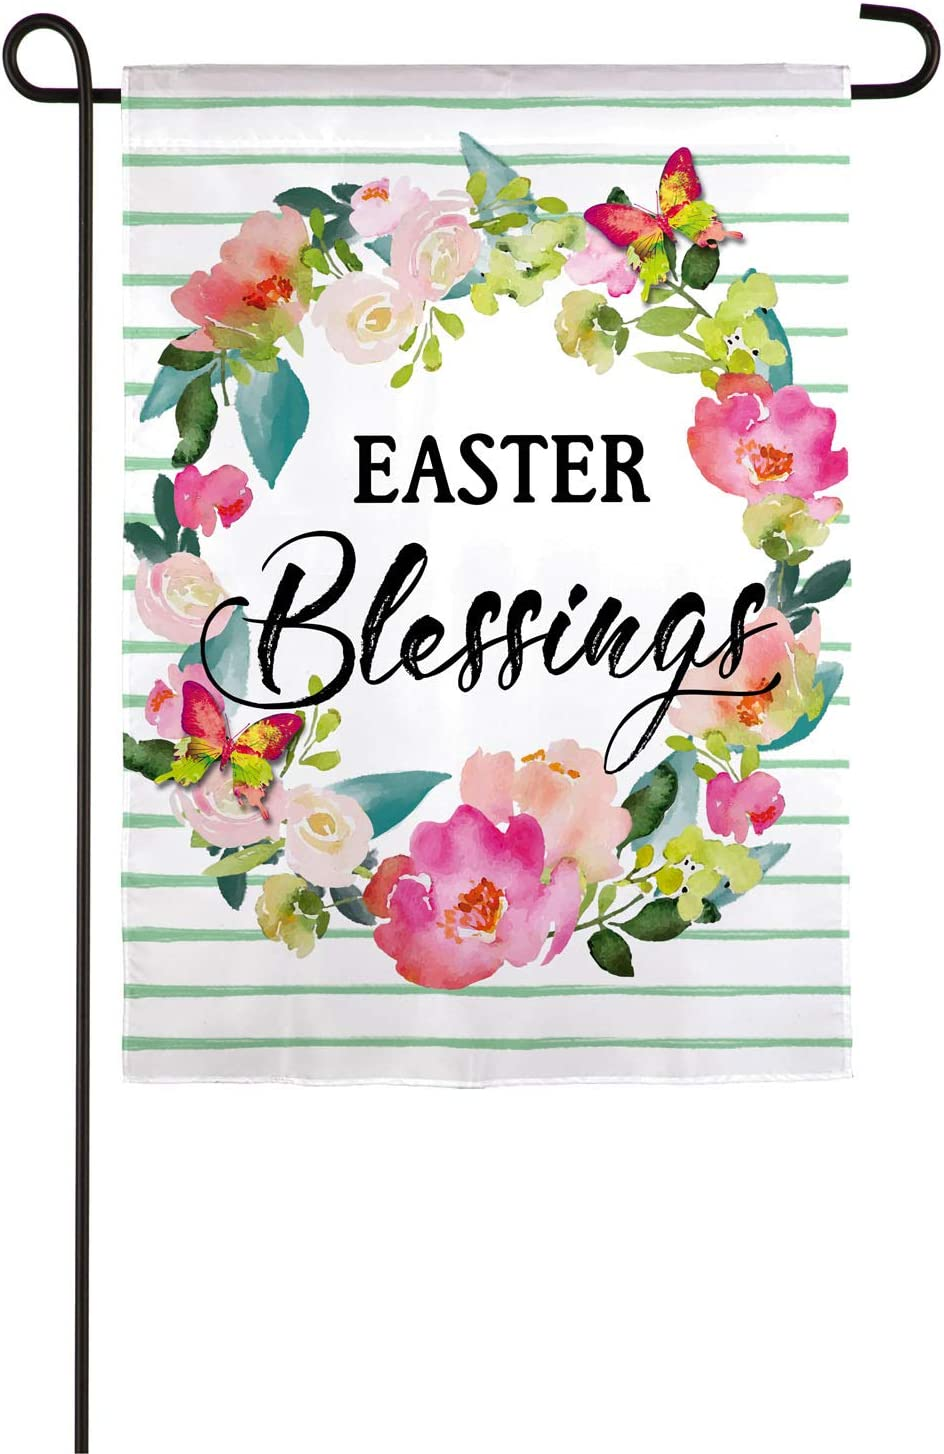 Evergreen Flag Beautiful Easter Blessings Wreath Linen Garden Flag - 13 x 18 Inches Fade and Weather Resistant Outdoor Decoration for Homes, Yards and Gardens